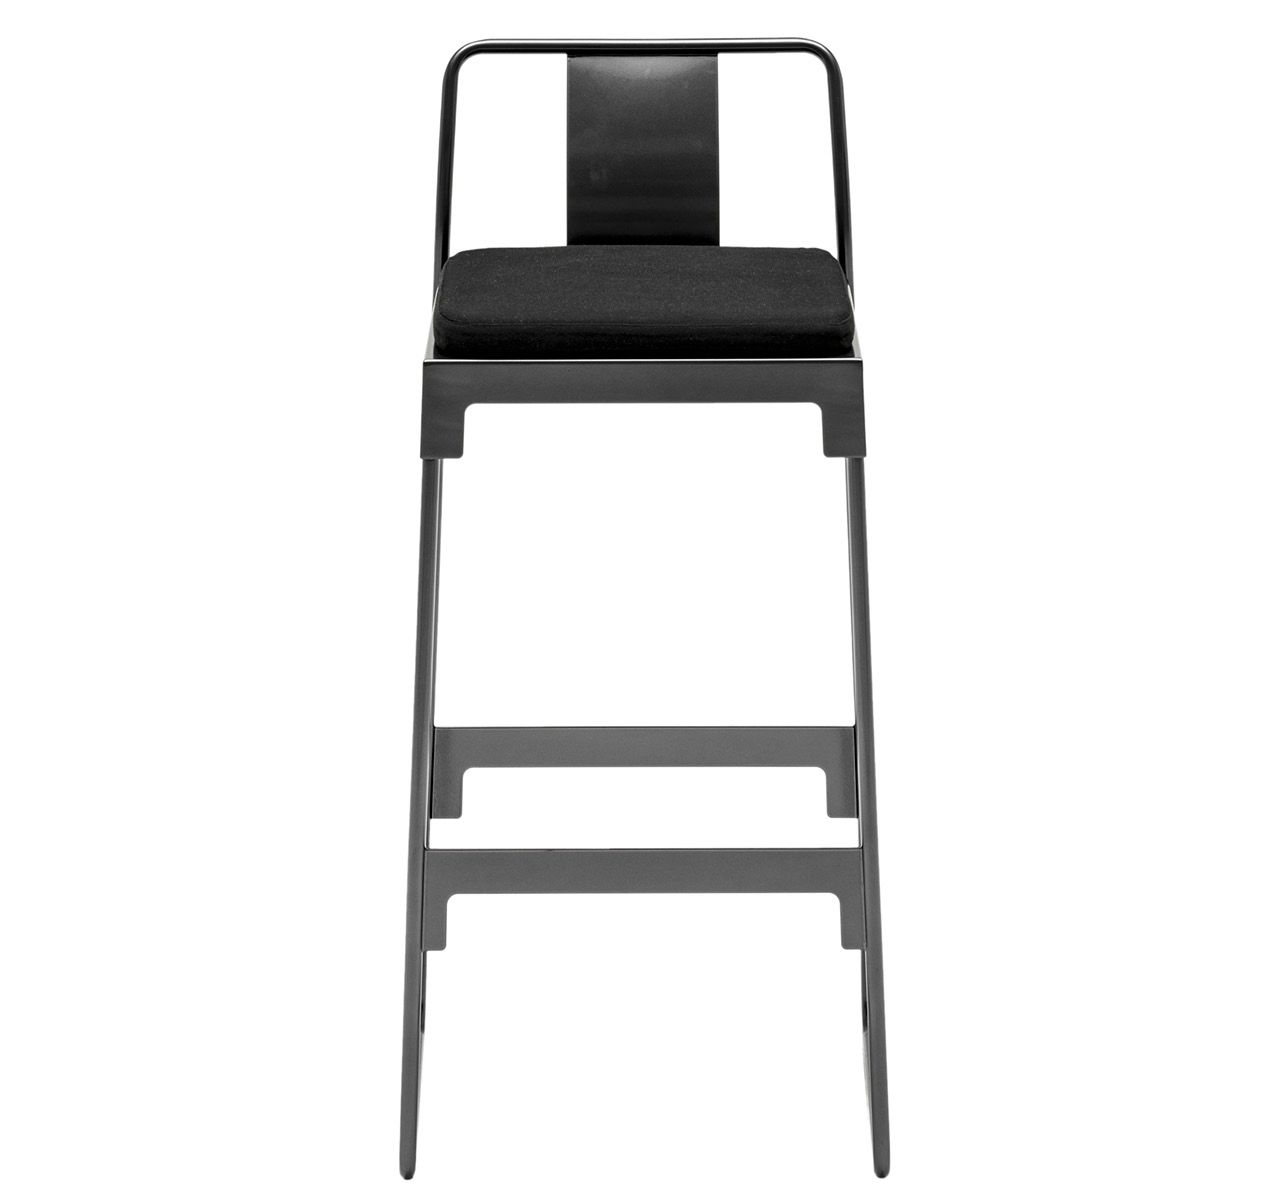 MINGX - Outdoor High Stool with Back Black